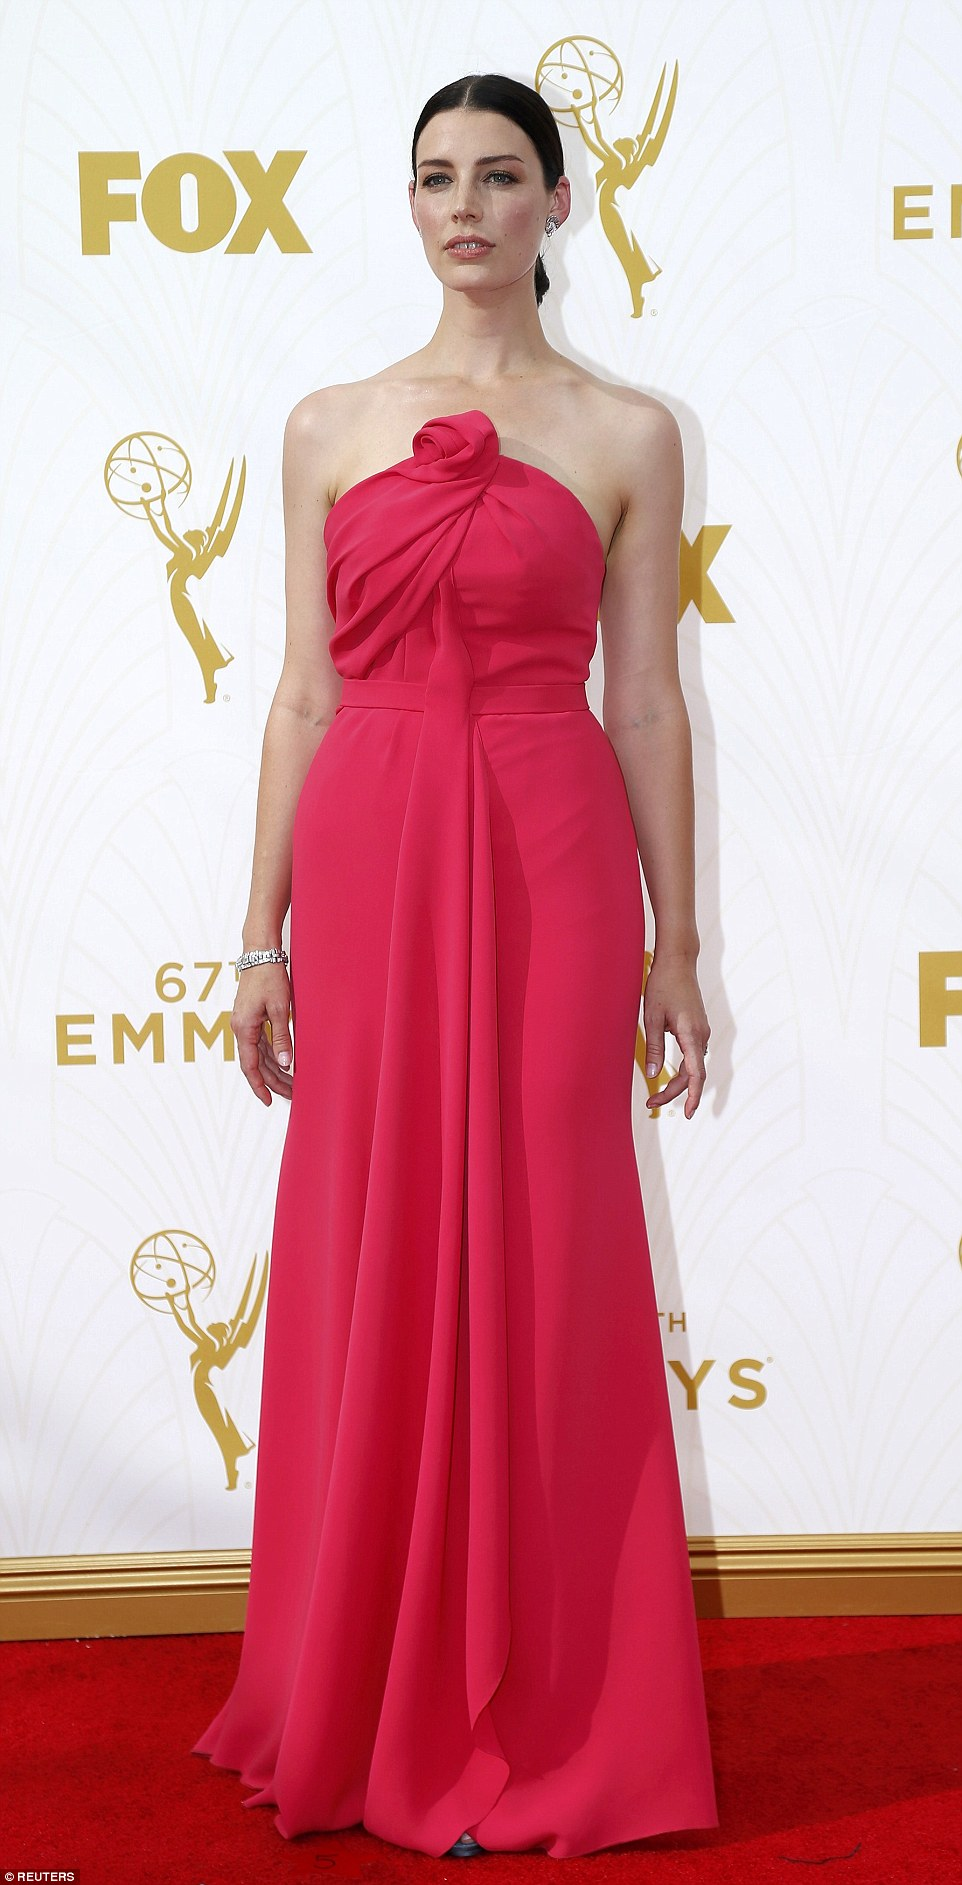 Alabaster beauty: The actress put on an understated display of glamour and chic in her pink strapless gown